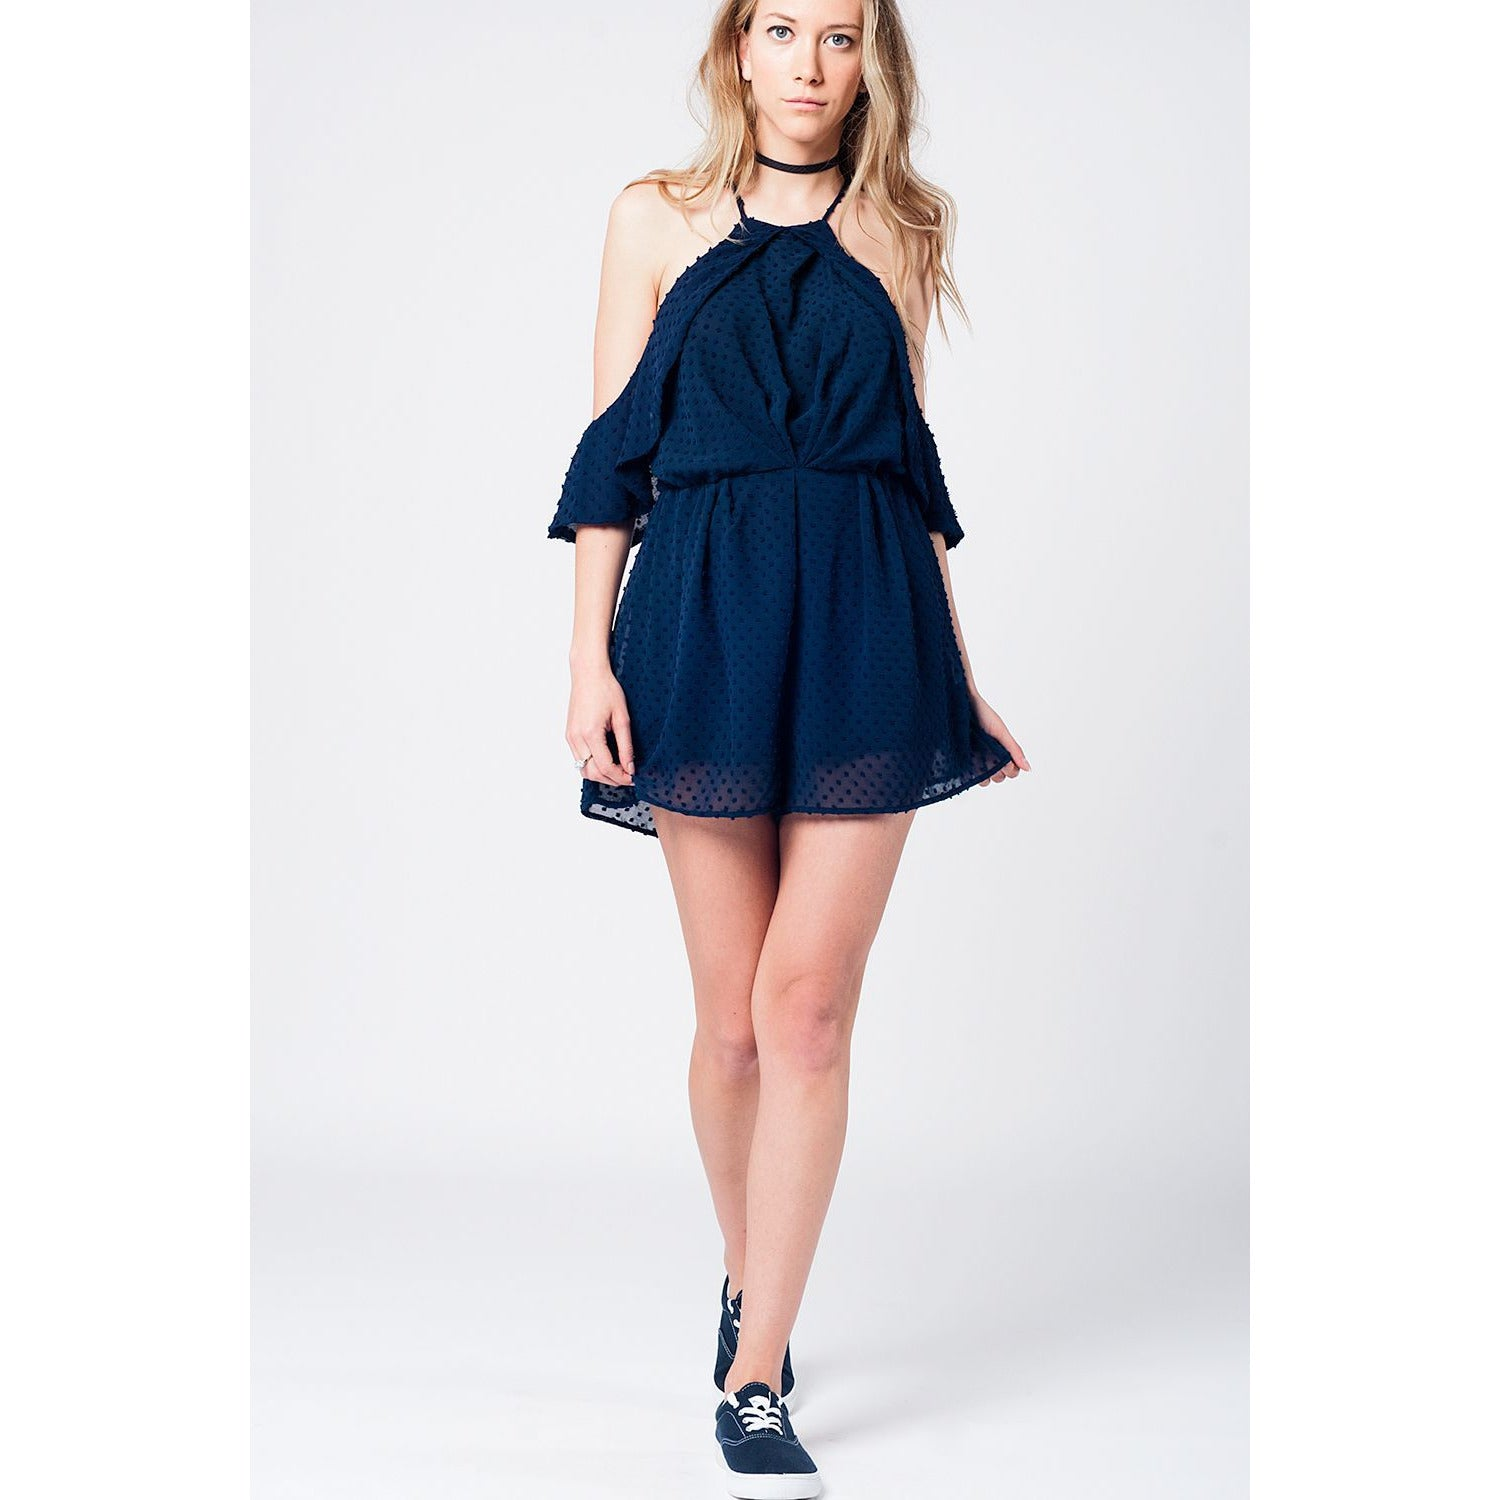 Navy Plummet Cold-Shoulder Romper - Miraposa